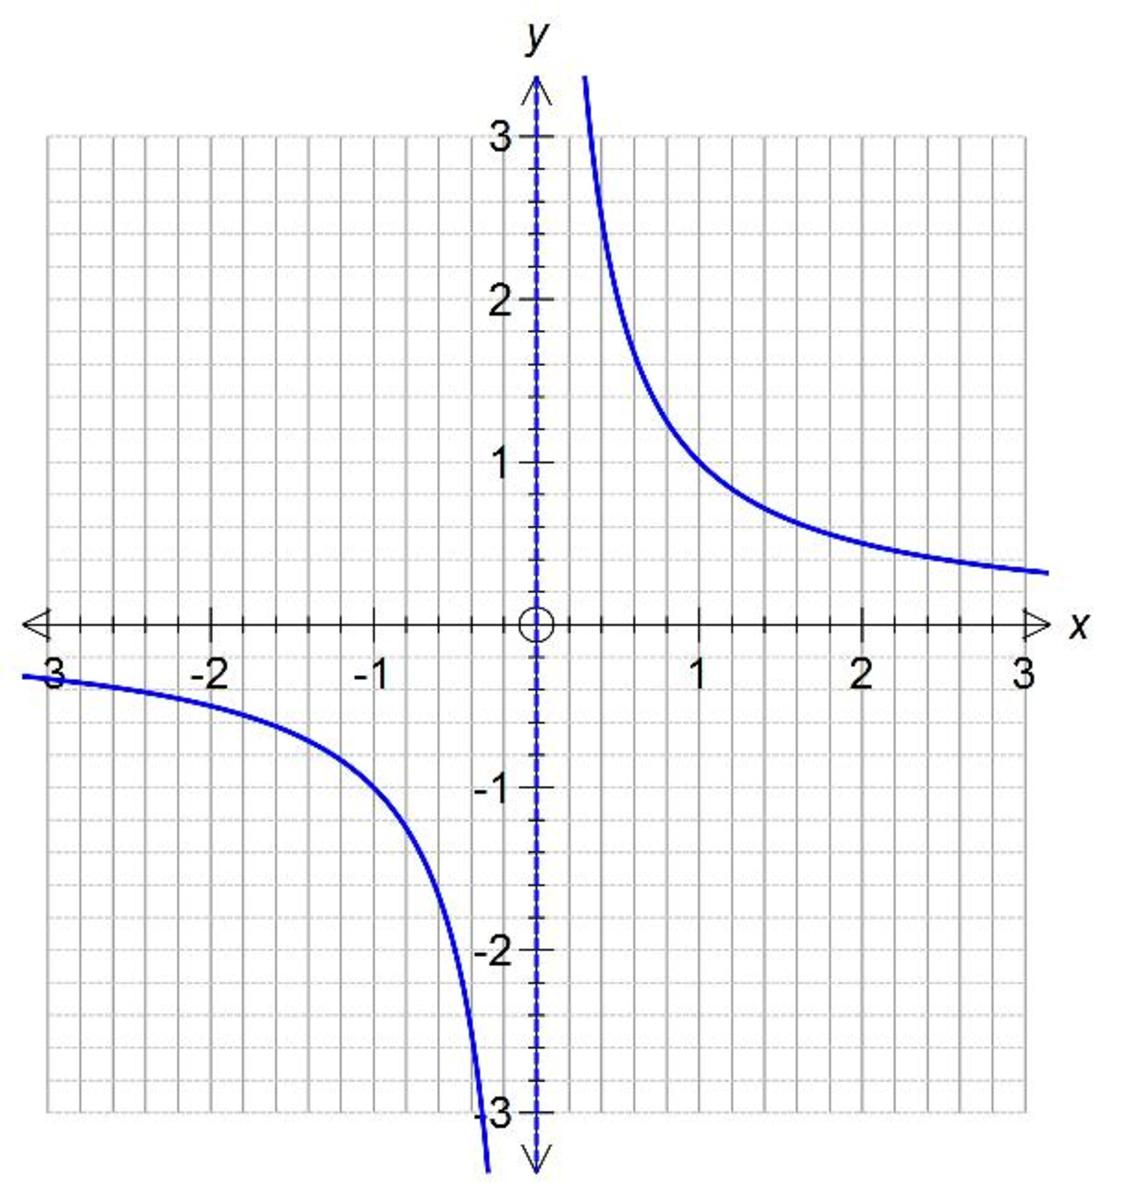 reciprocal-graphs-what-does-a-reciprocal-graph-look-like-and-its-characteristics